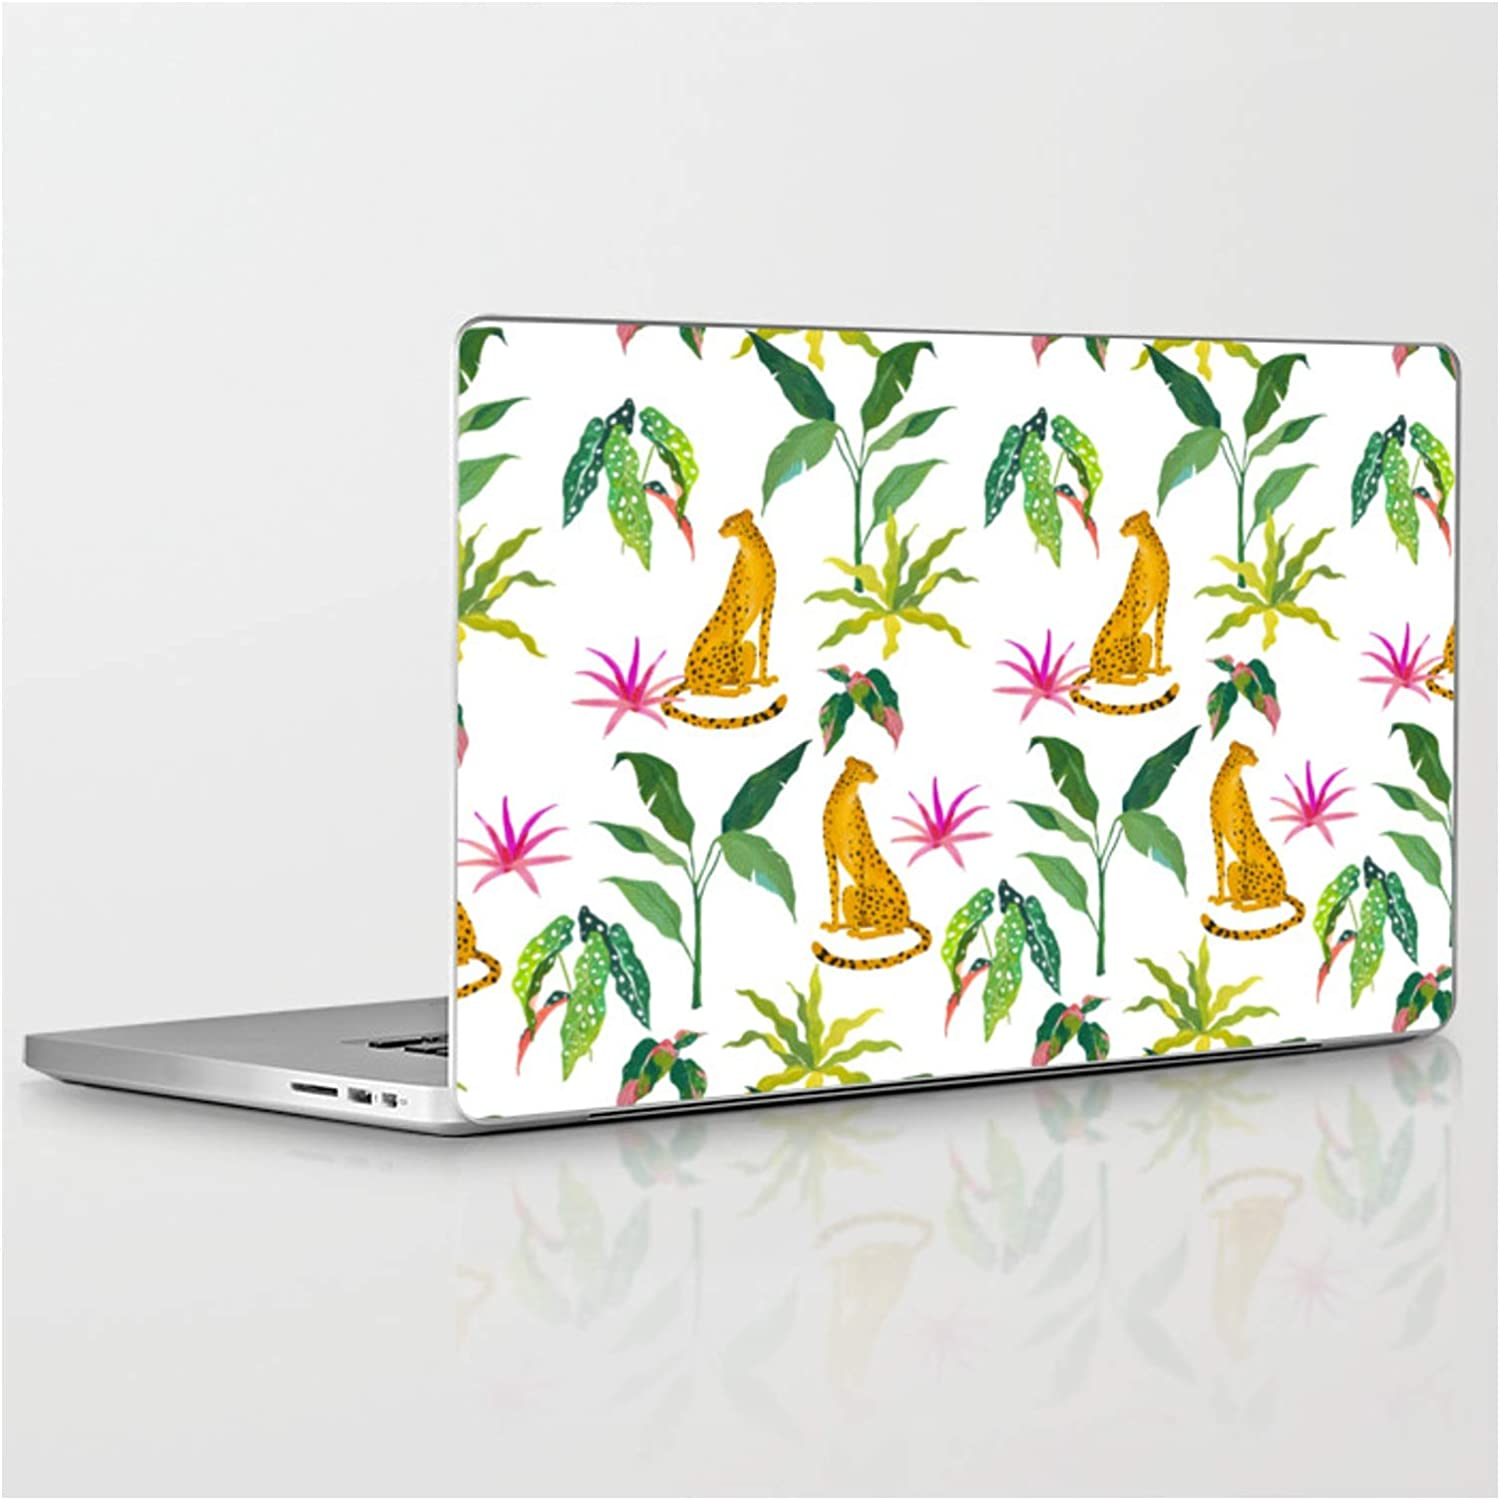 Leopard Jungle by Sunlee Art on with Bargain sale famous MacB Compatible Laptop Skin